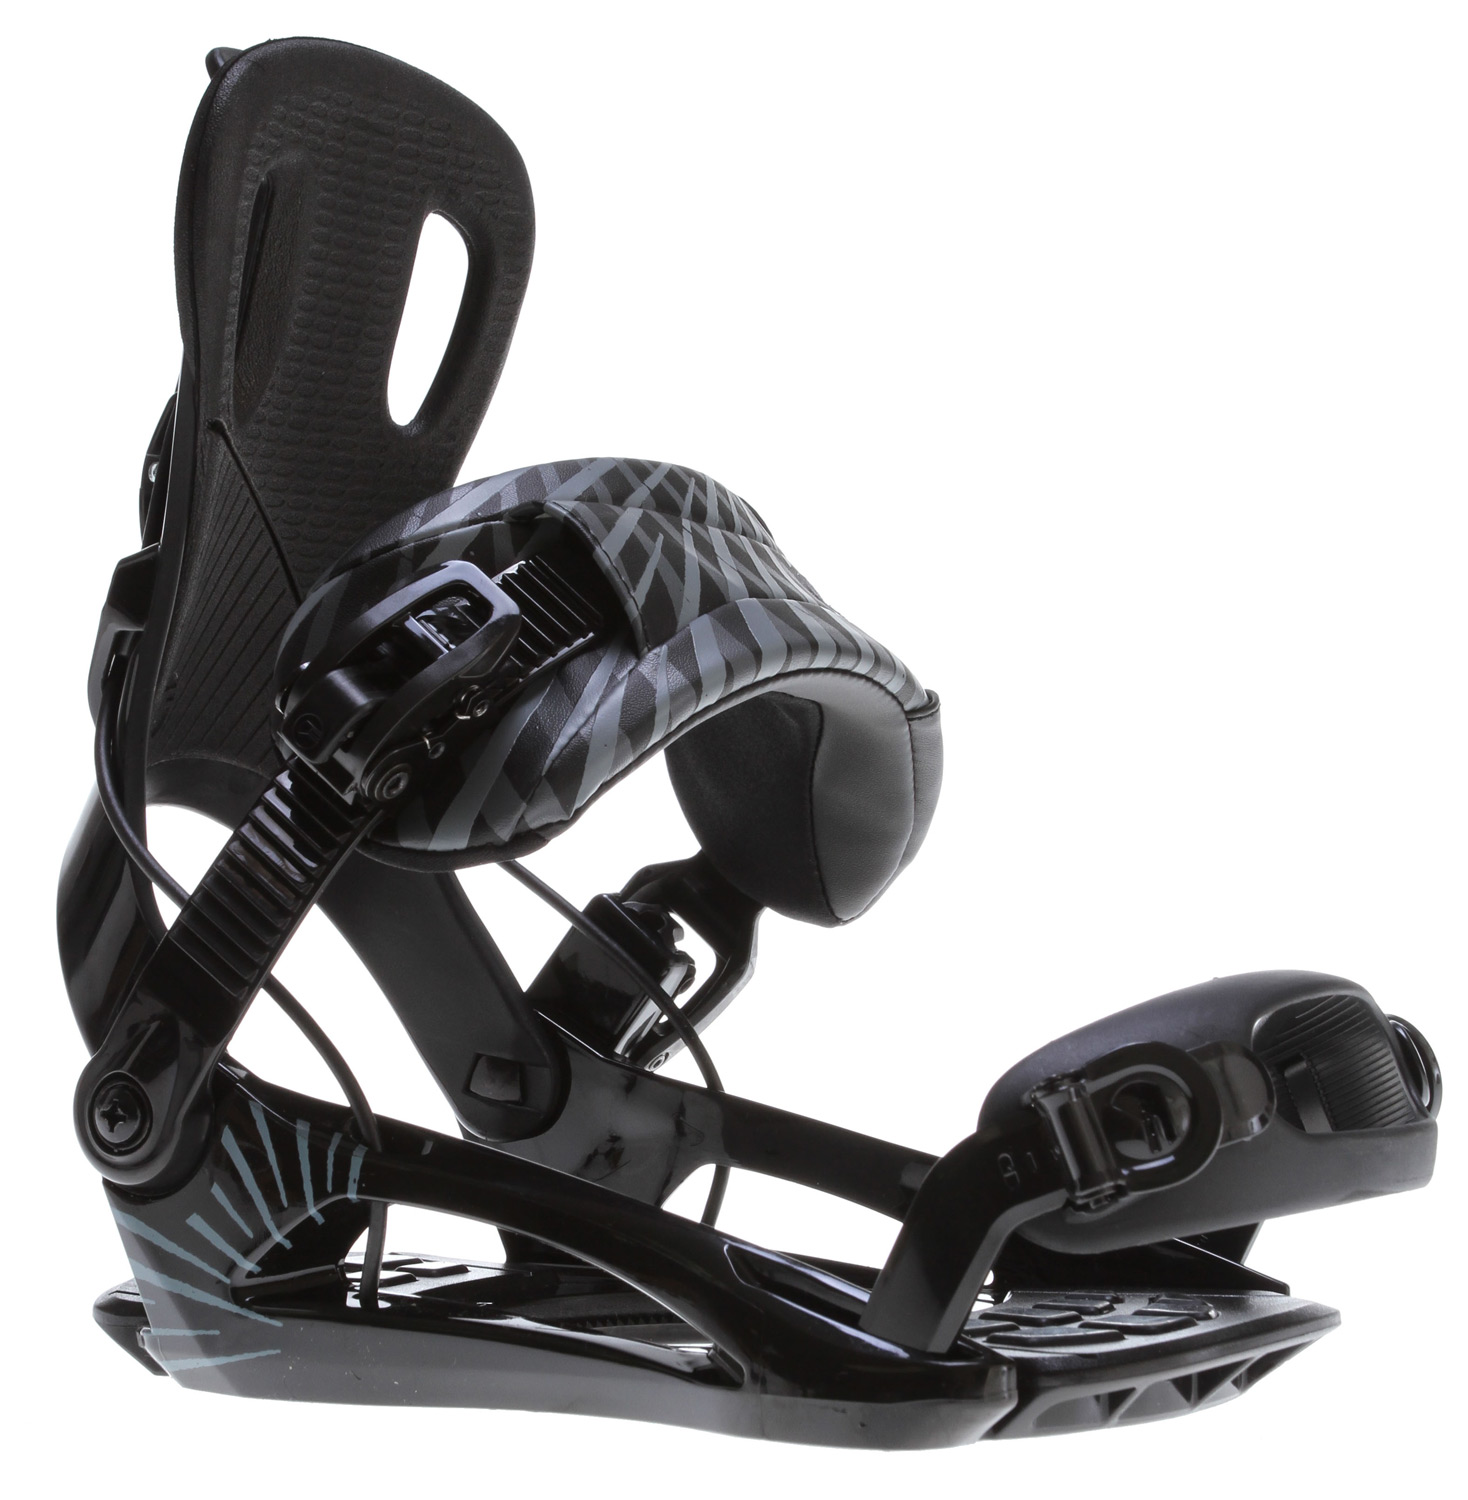 Snowboard The Street binding is for riders who want an all mountain binding that can do it all with comfort and response. New basplate andpremium components add the small details that take you to a new level and make this one of our most popular models.Key Features of the GNU Street Snowboard Bindings:  NEW! Micro buckle 2  Soft top highback padding  Three panel inverse seam ankle strap  NEW! FT4 baseplate  NEW! Snow shedding footbed with shockpads.  NEW! Thin fit toe strap  Flex: 6 - $123.95